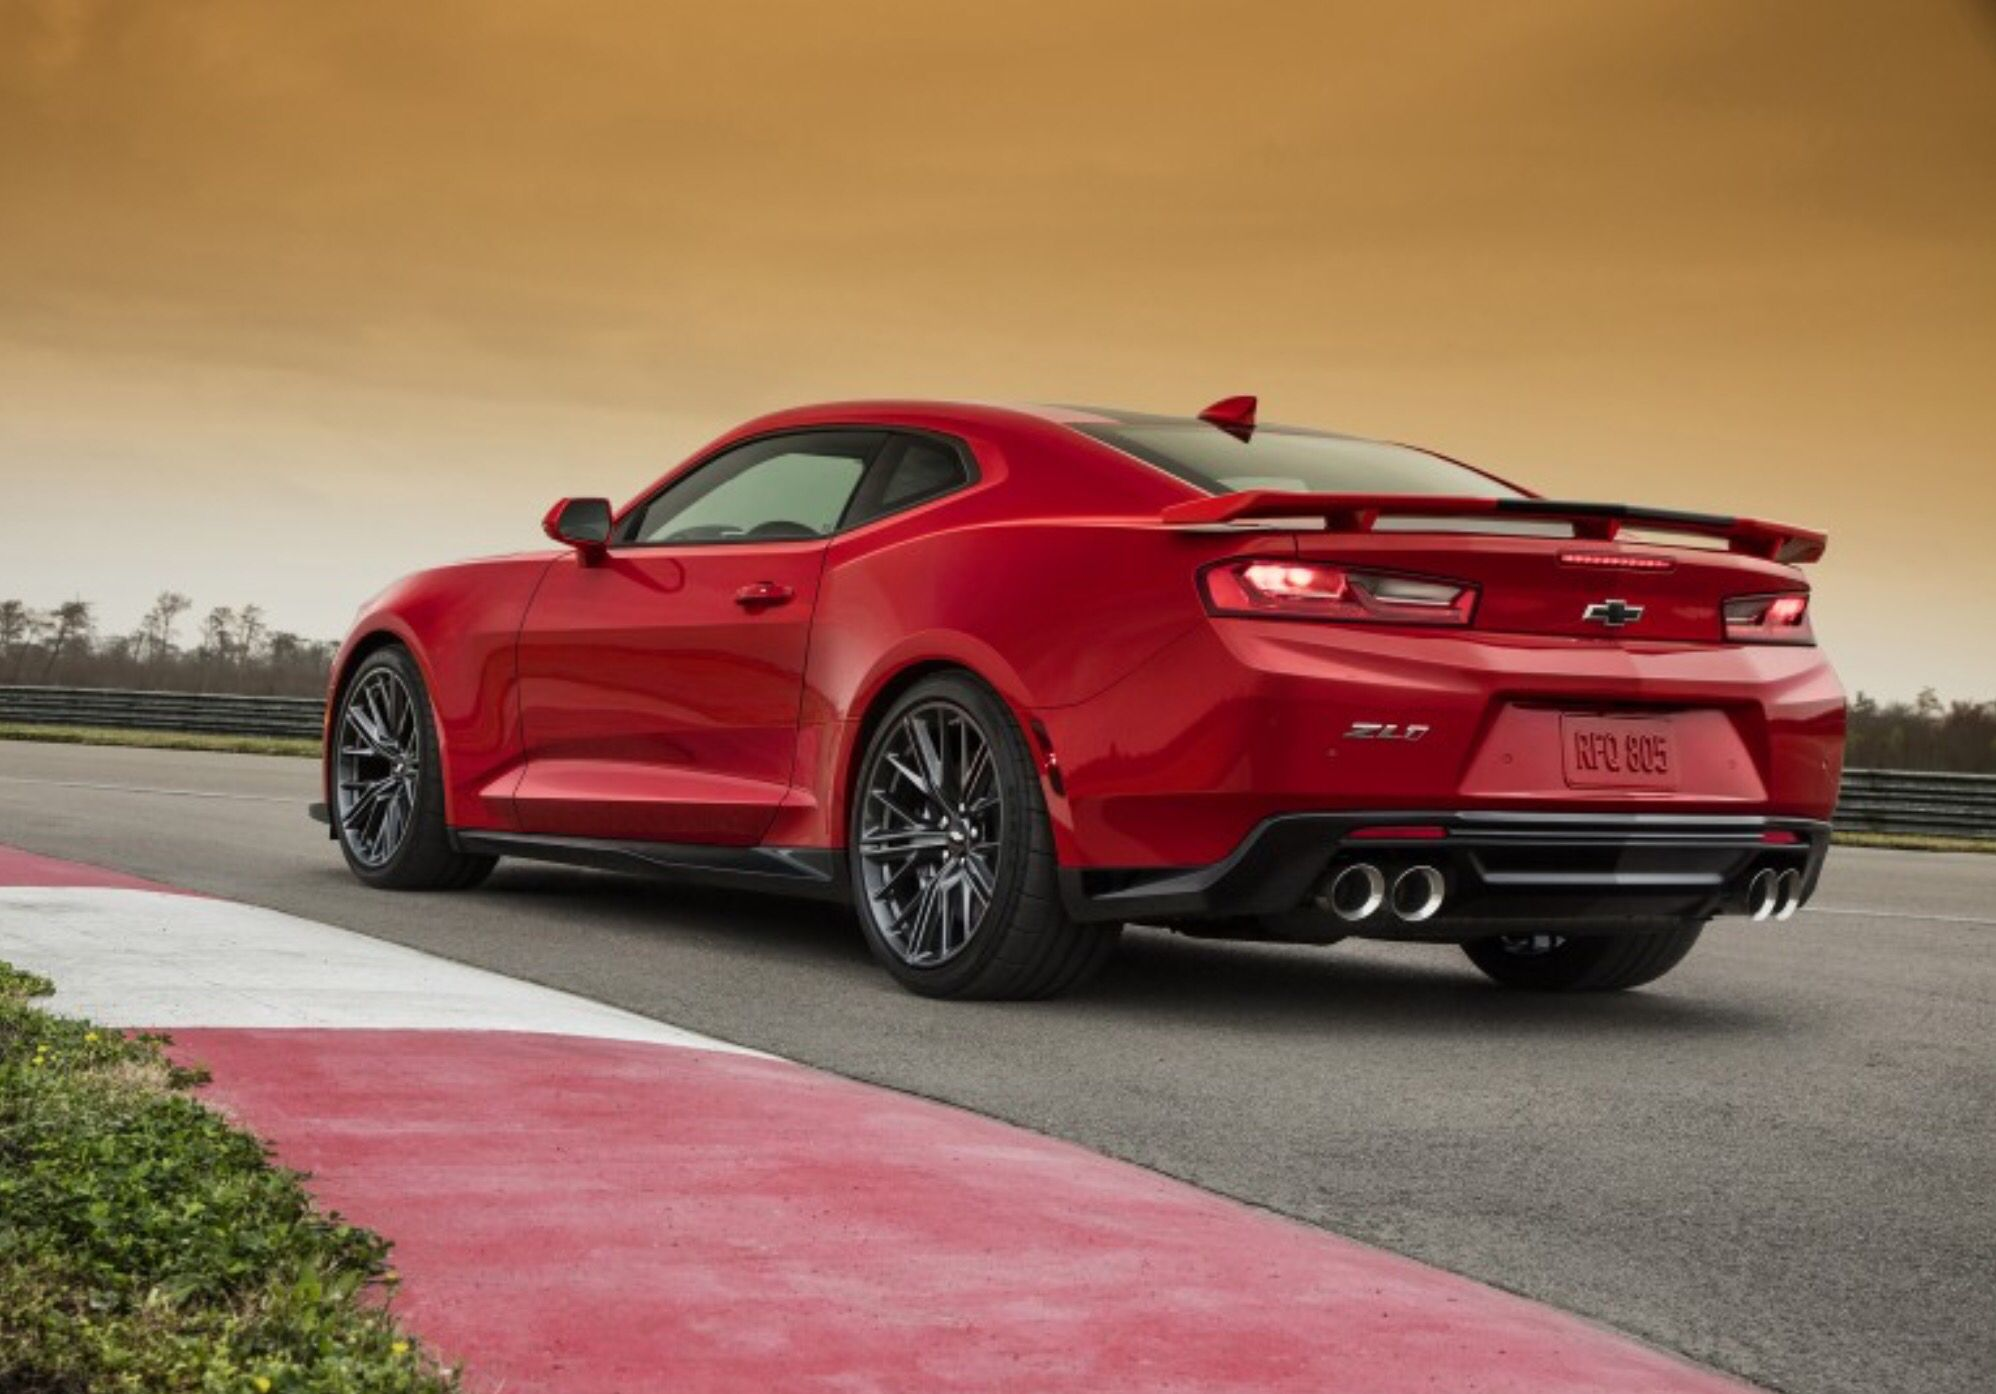 2017 Camaro ZL1 Supercharged 6.2L LT4 Small Block V8 - 640 hp - 640 lb-ft of torque